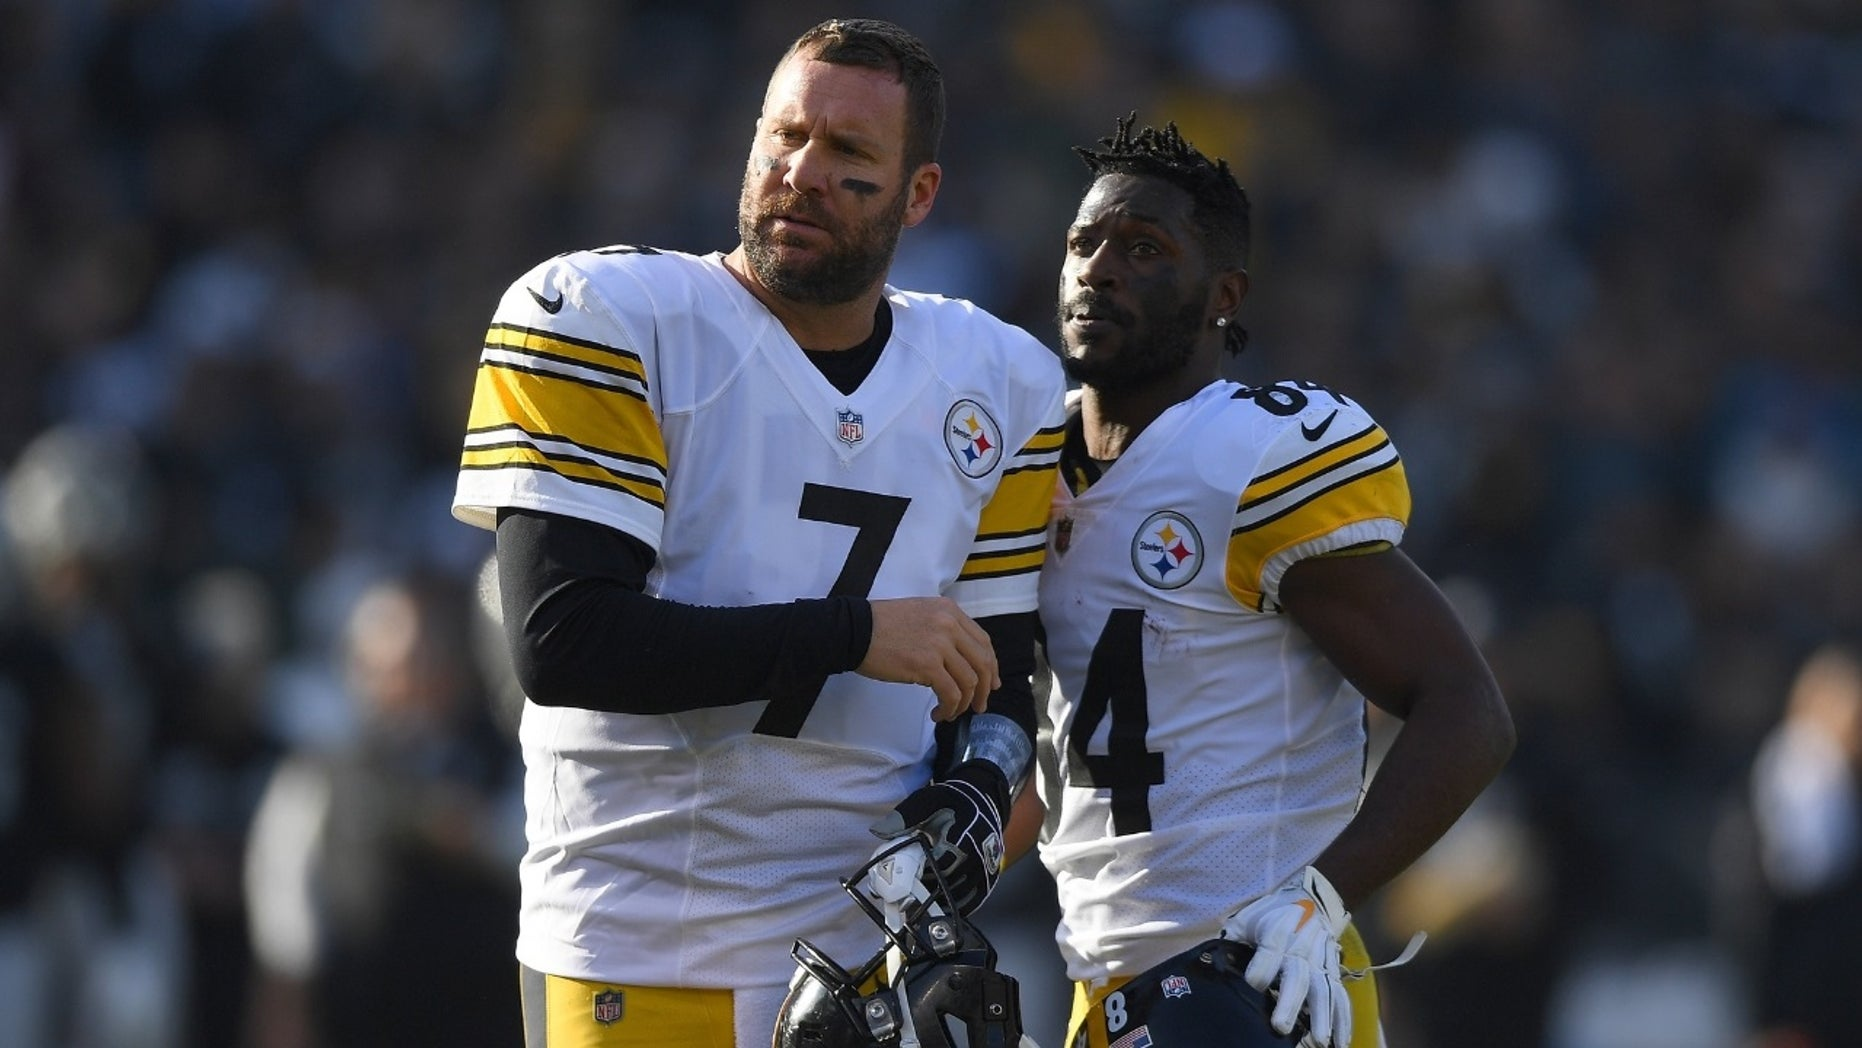 ffc62276 Pittsburgh Steelers star receiver Antonio Brown [right] was benched last  week following a heated